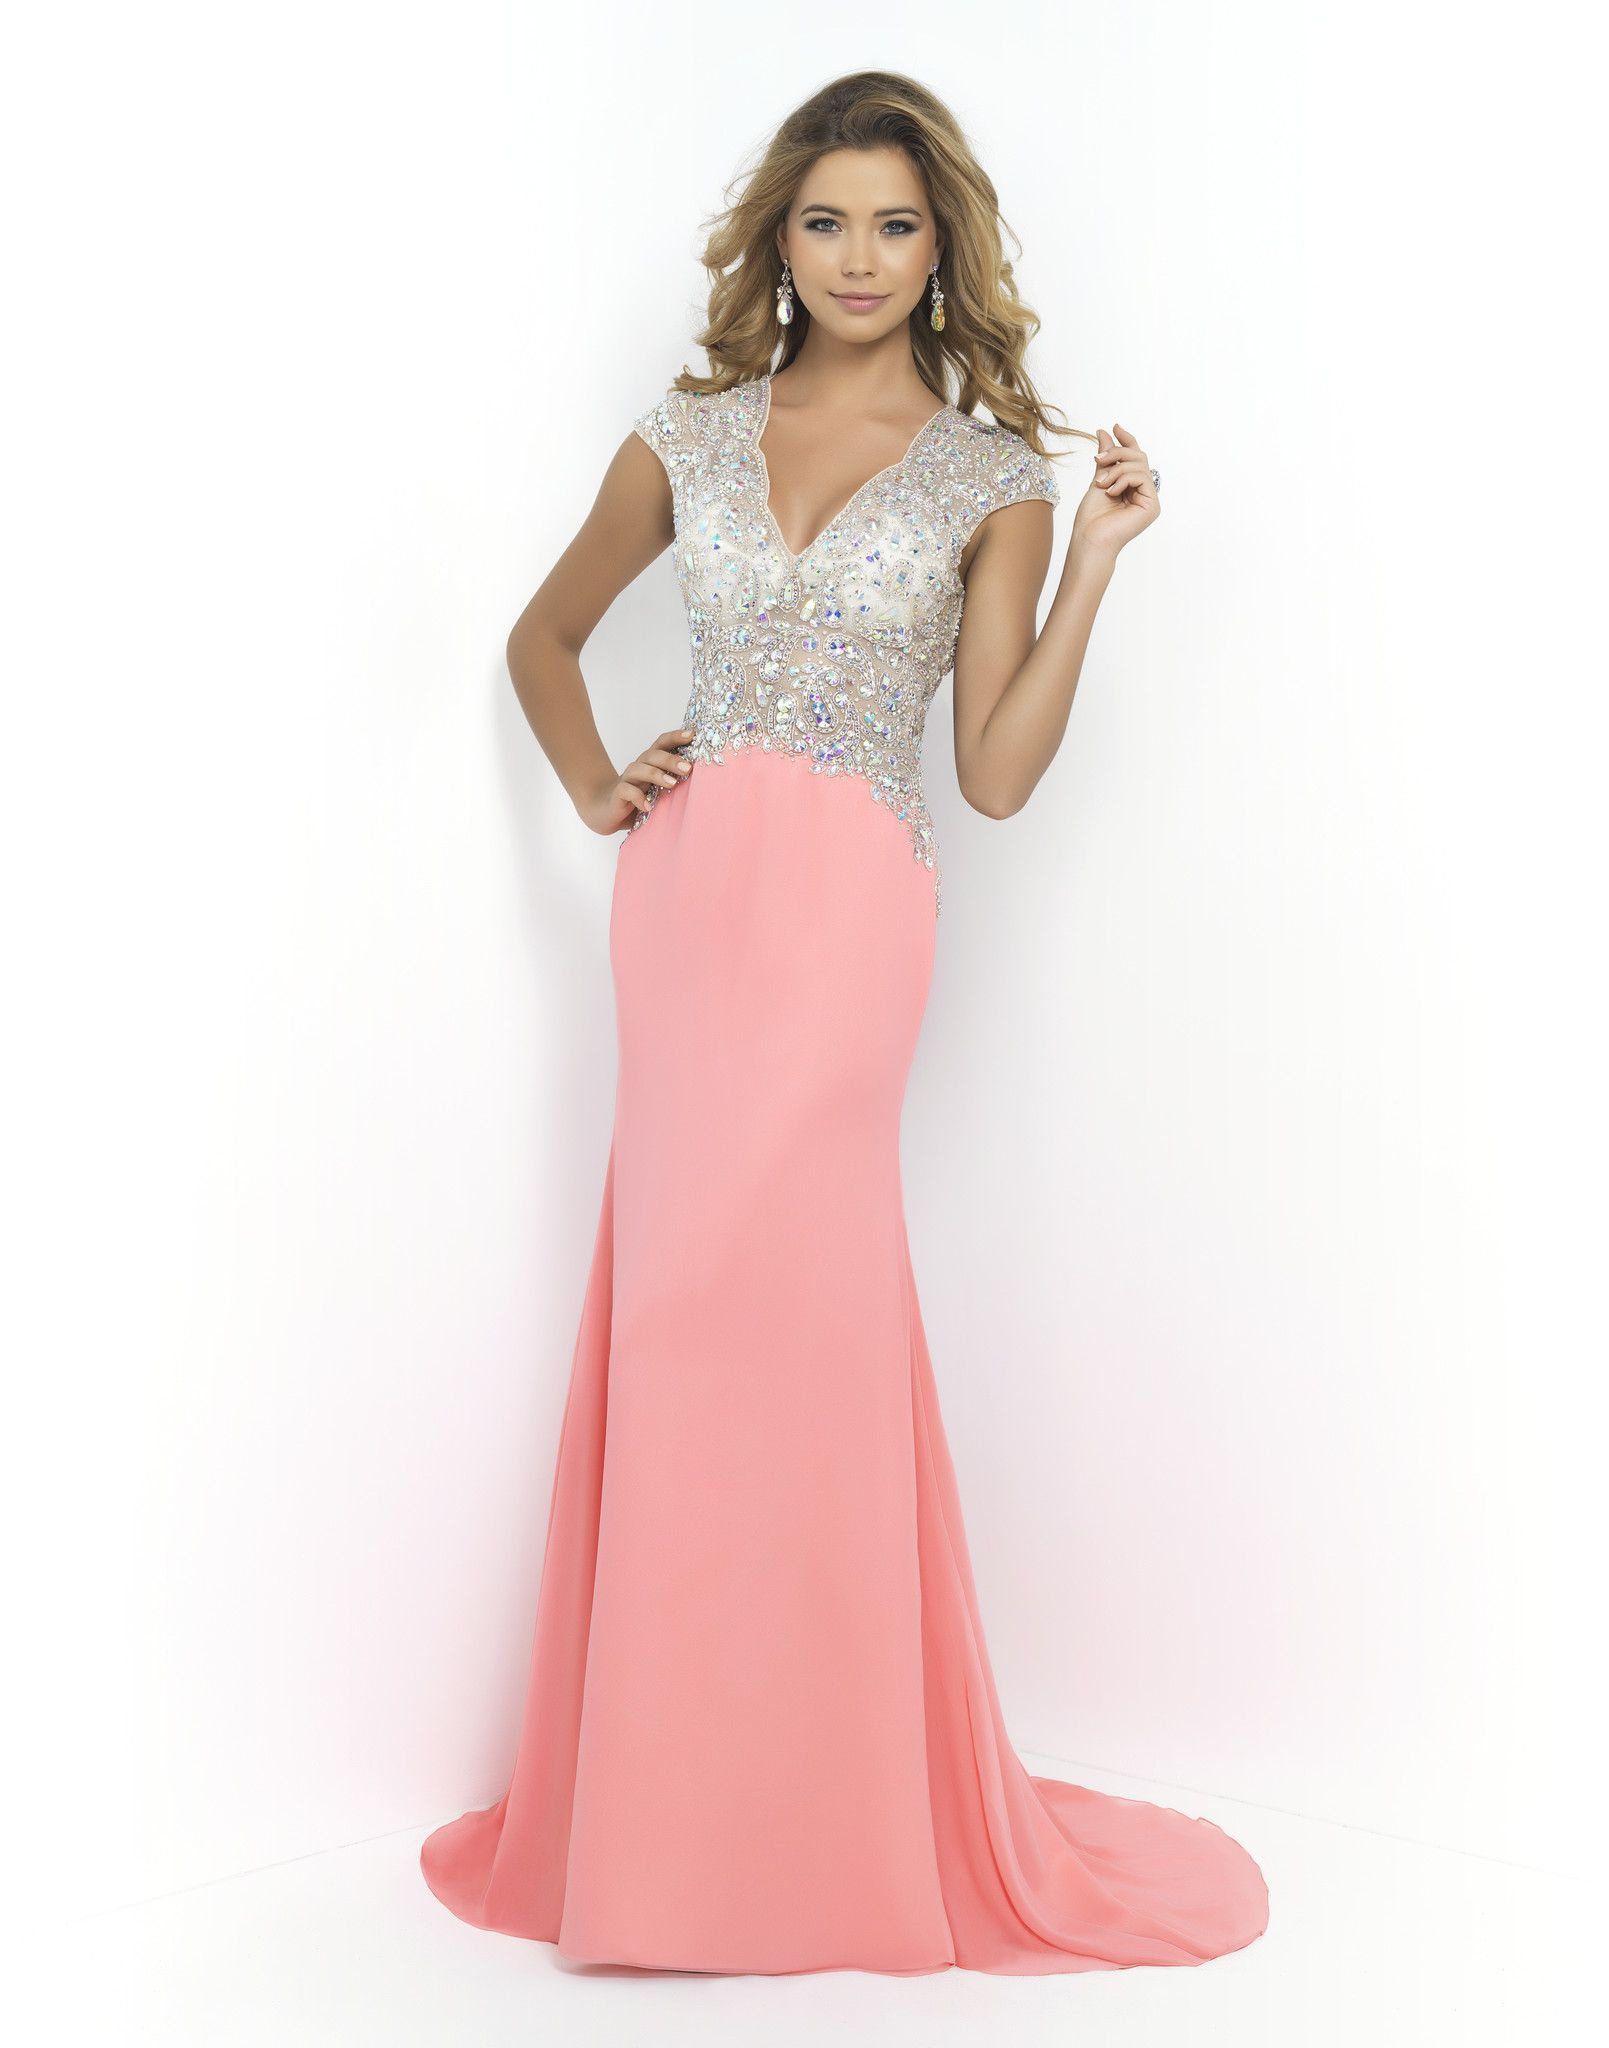 BLUSH PROM 9928 CORAL PINK Beautifully beaded nude illusion bodice ...